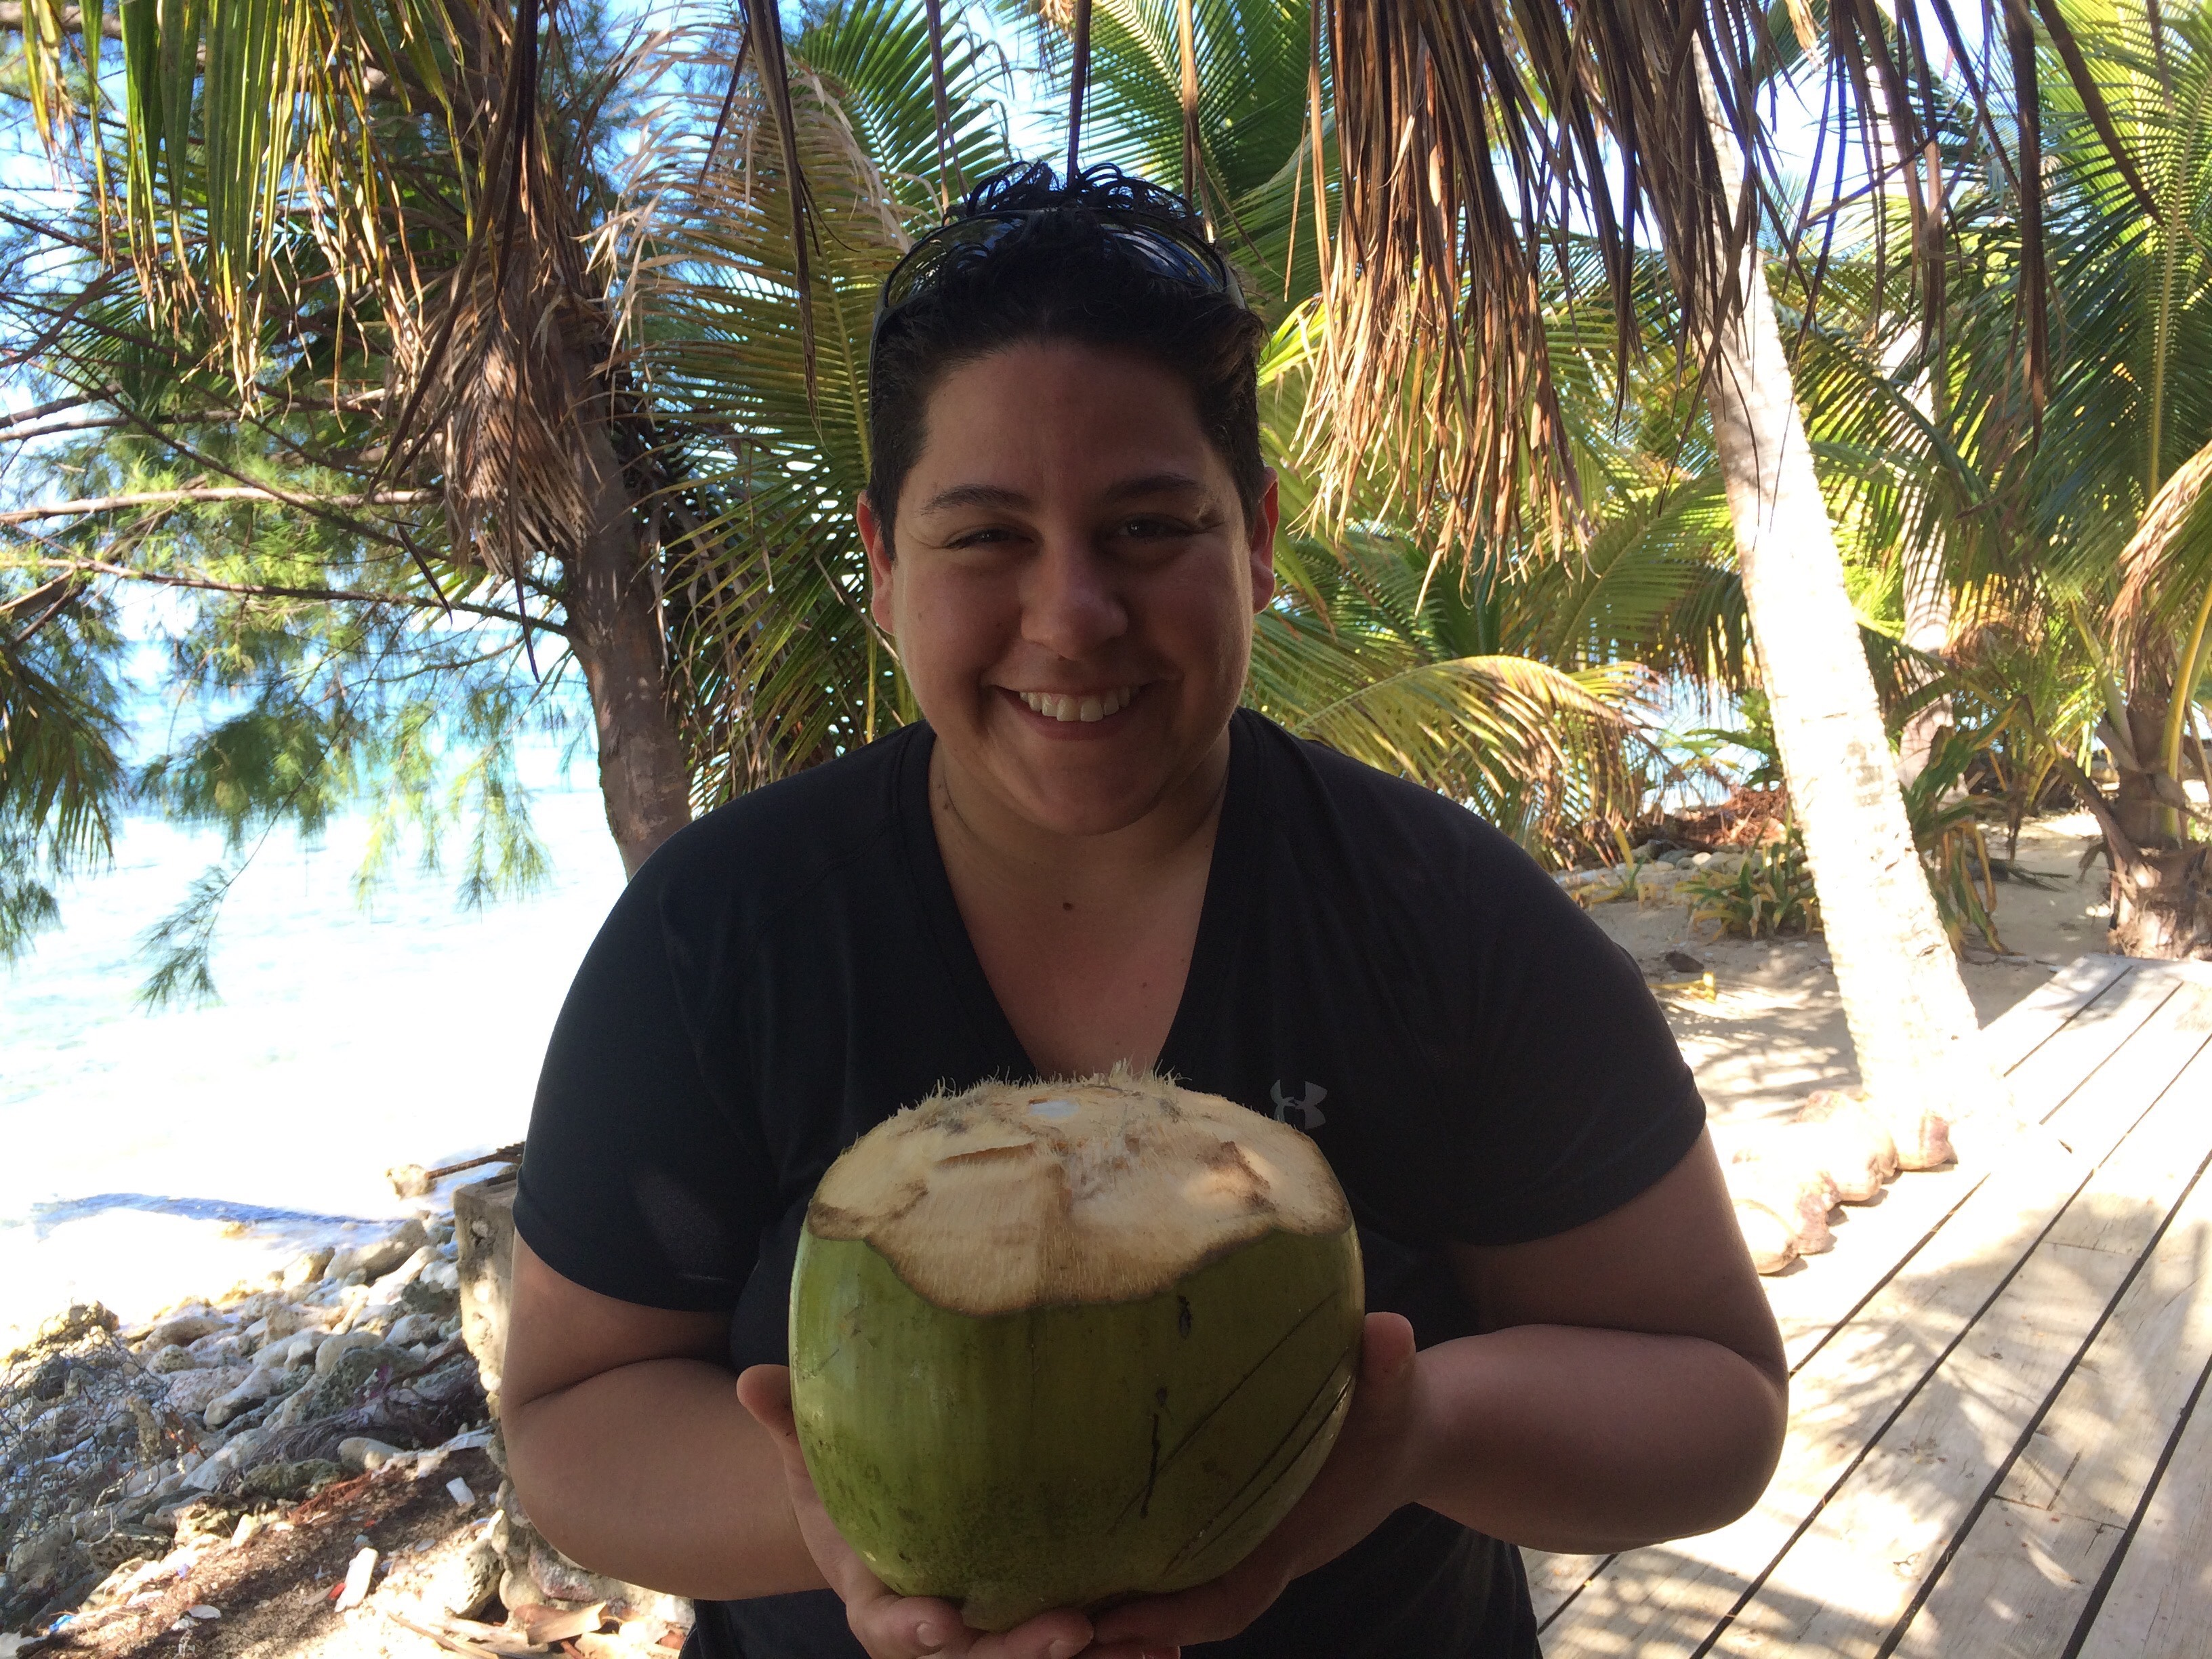 Woman with sunglasses holding a tropical coconut